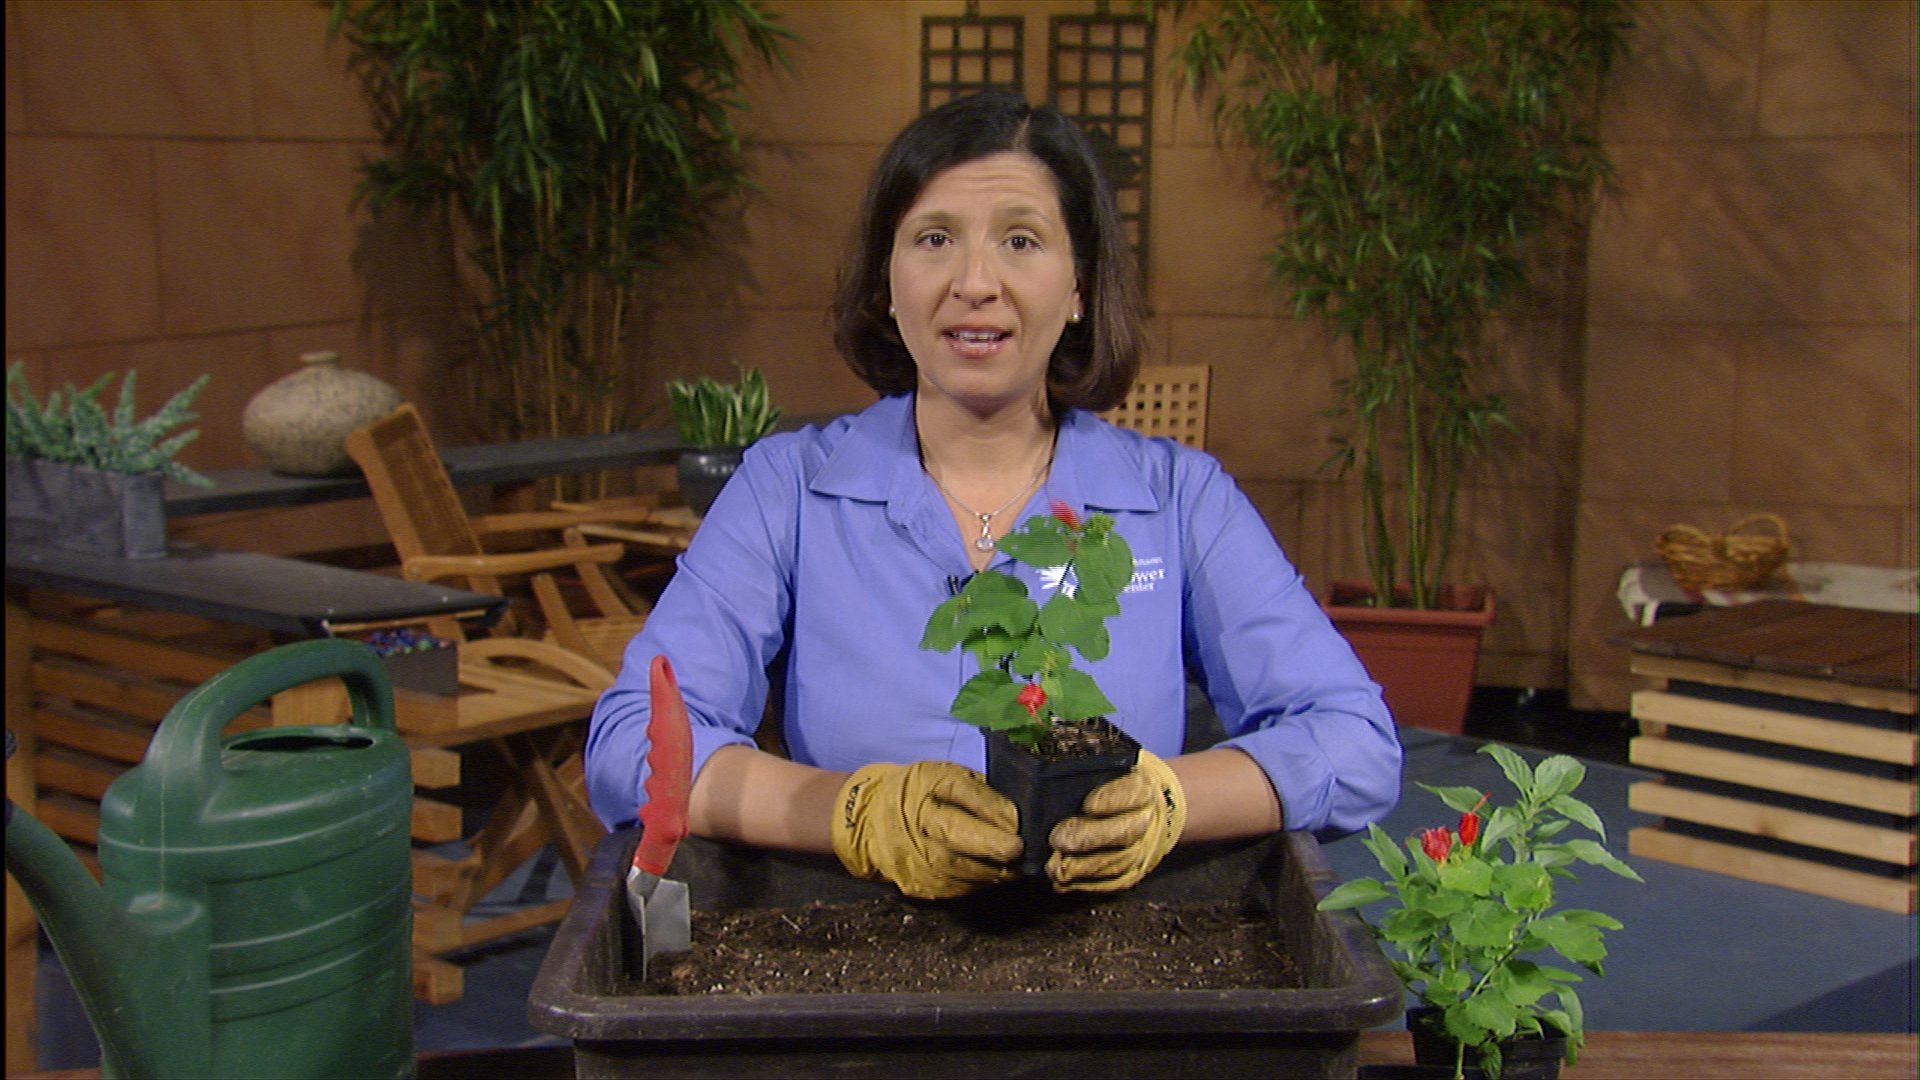 Andrea DeLong-Amaya shows how to plant